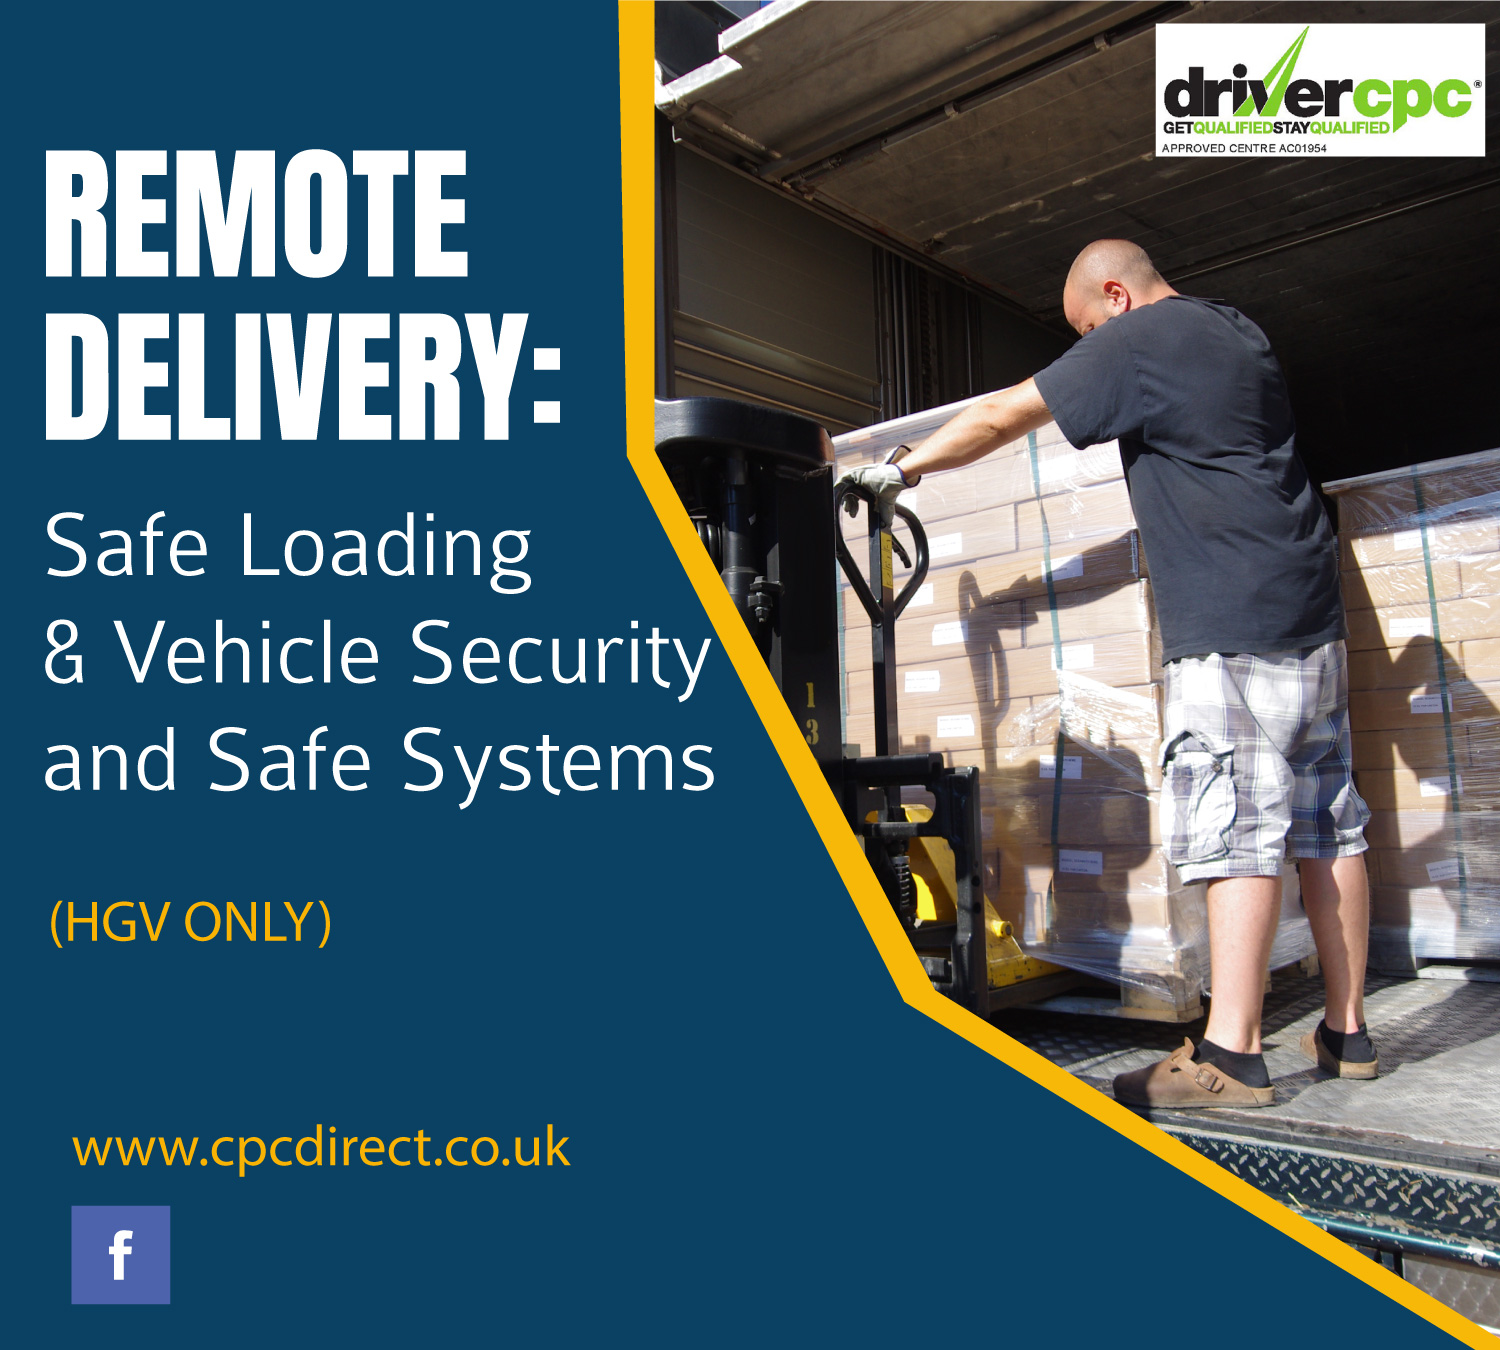 Remote Delivery: Safe Loading & Vehicle Security and Safe Systems Driver CPC Training